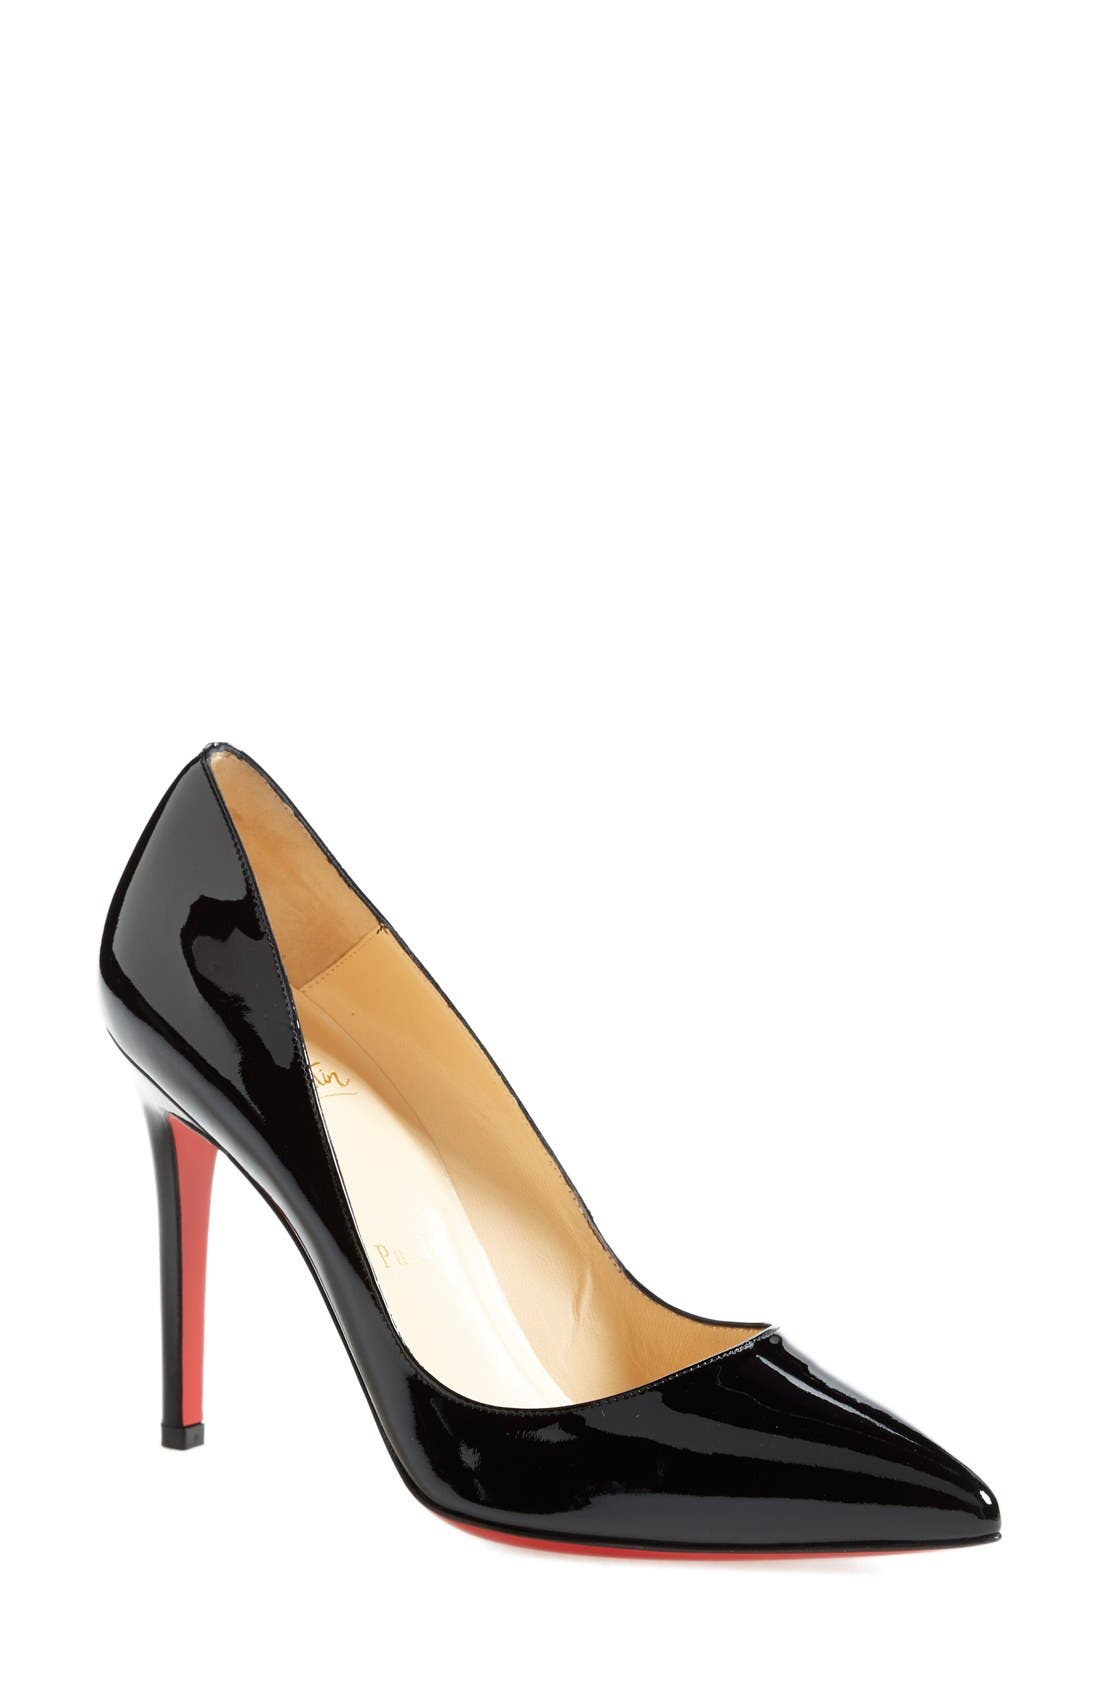 'Pigalle' Pointy Toe Pump,                             Main thumbnail 1, color,                             BLACK